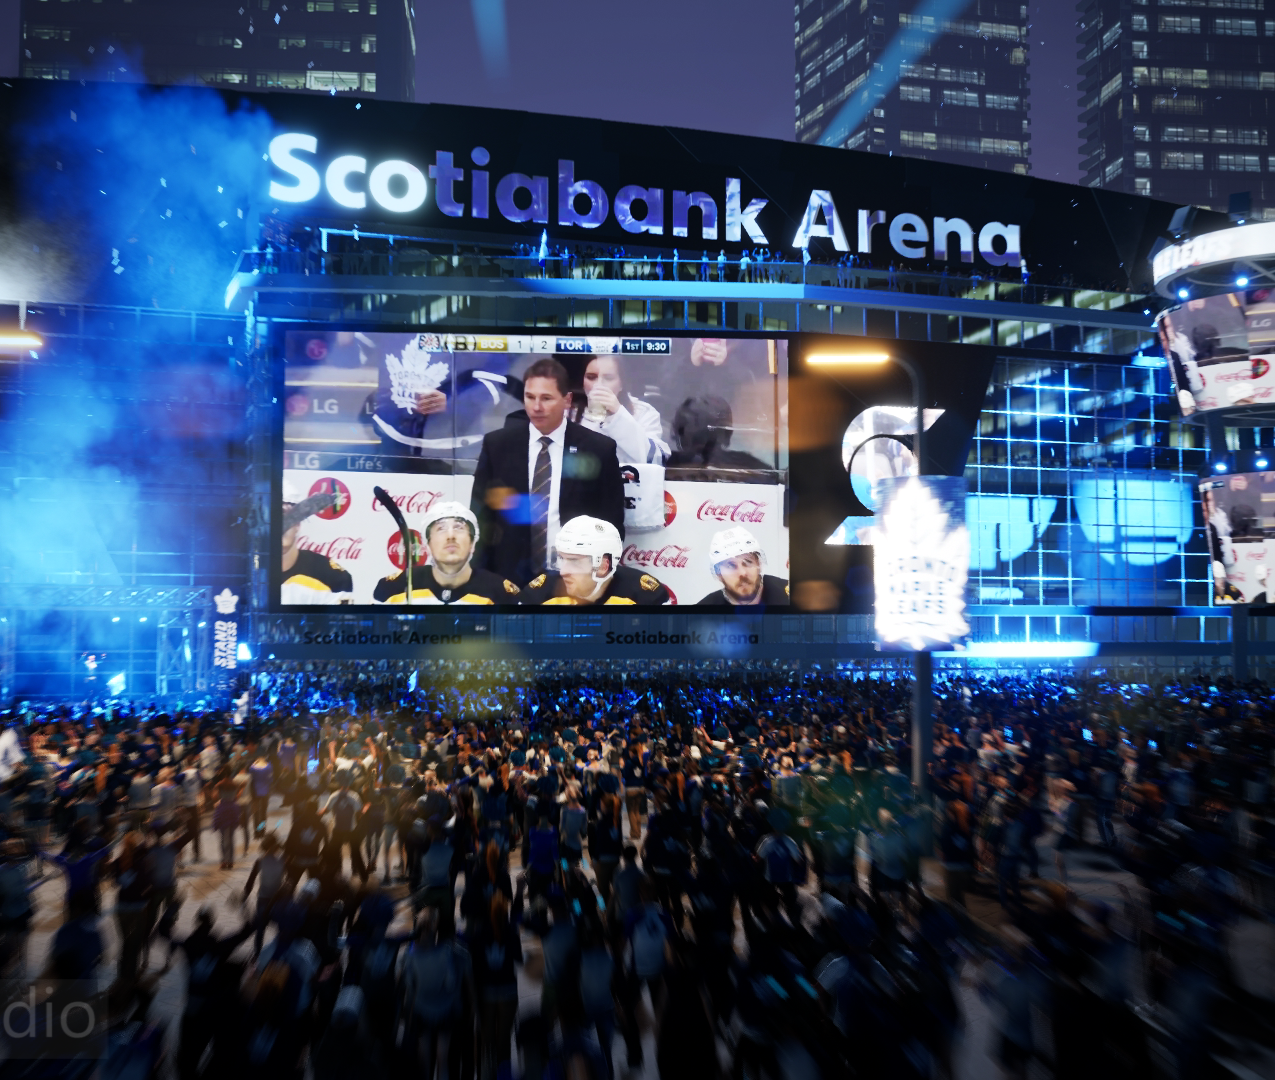 3D render of hockey arena during game night in Canada